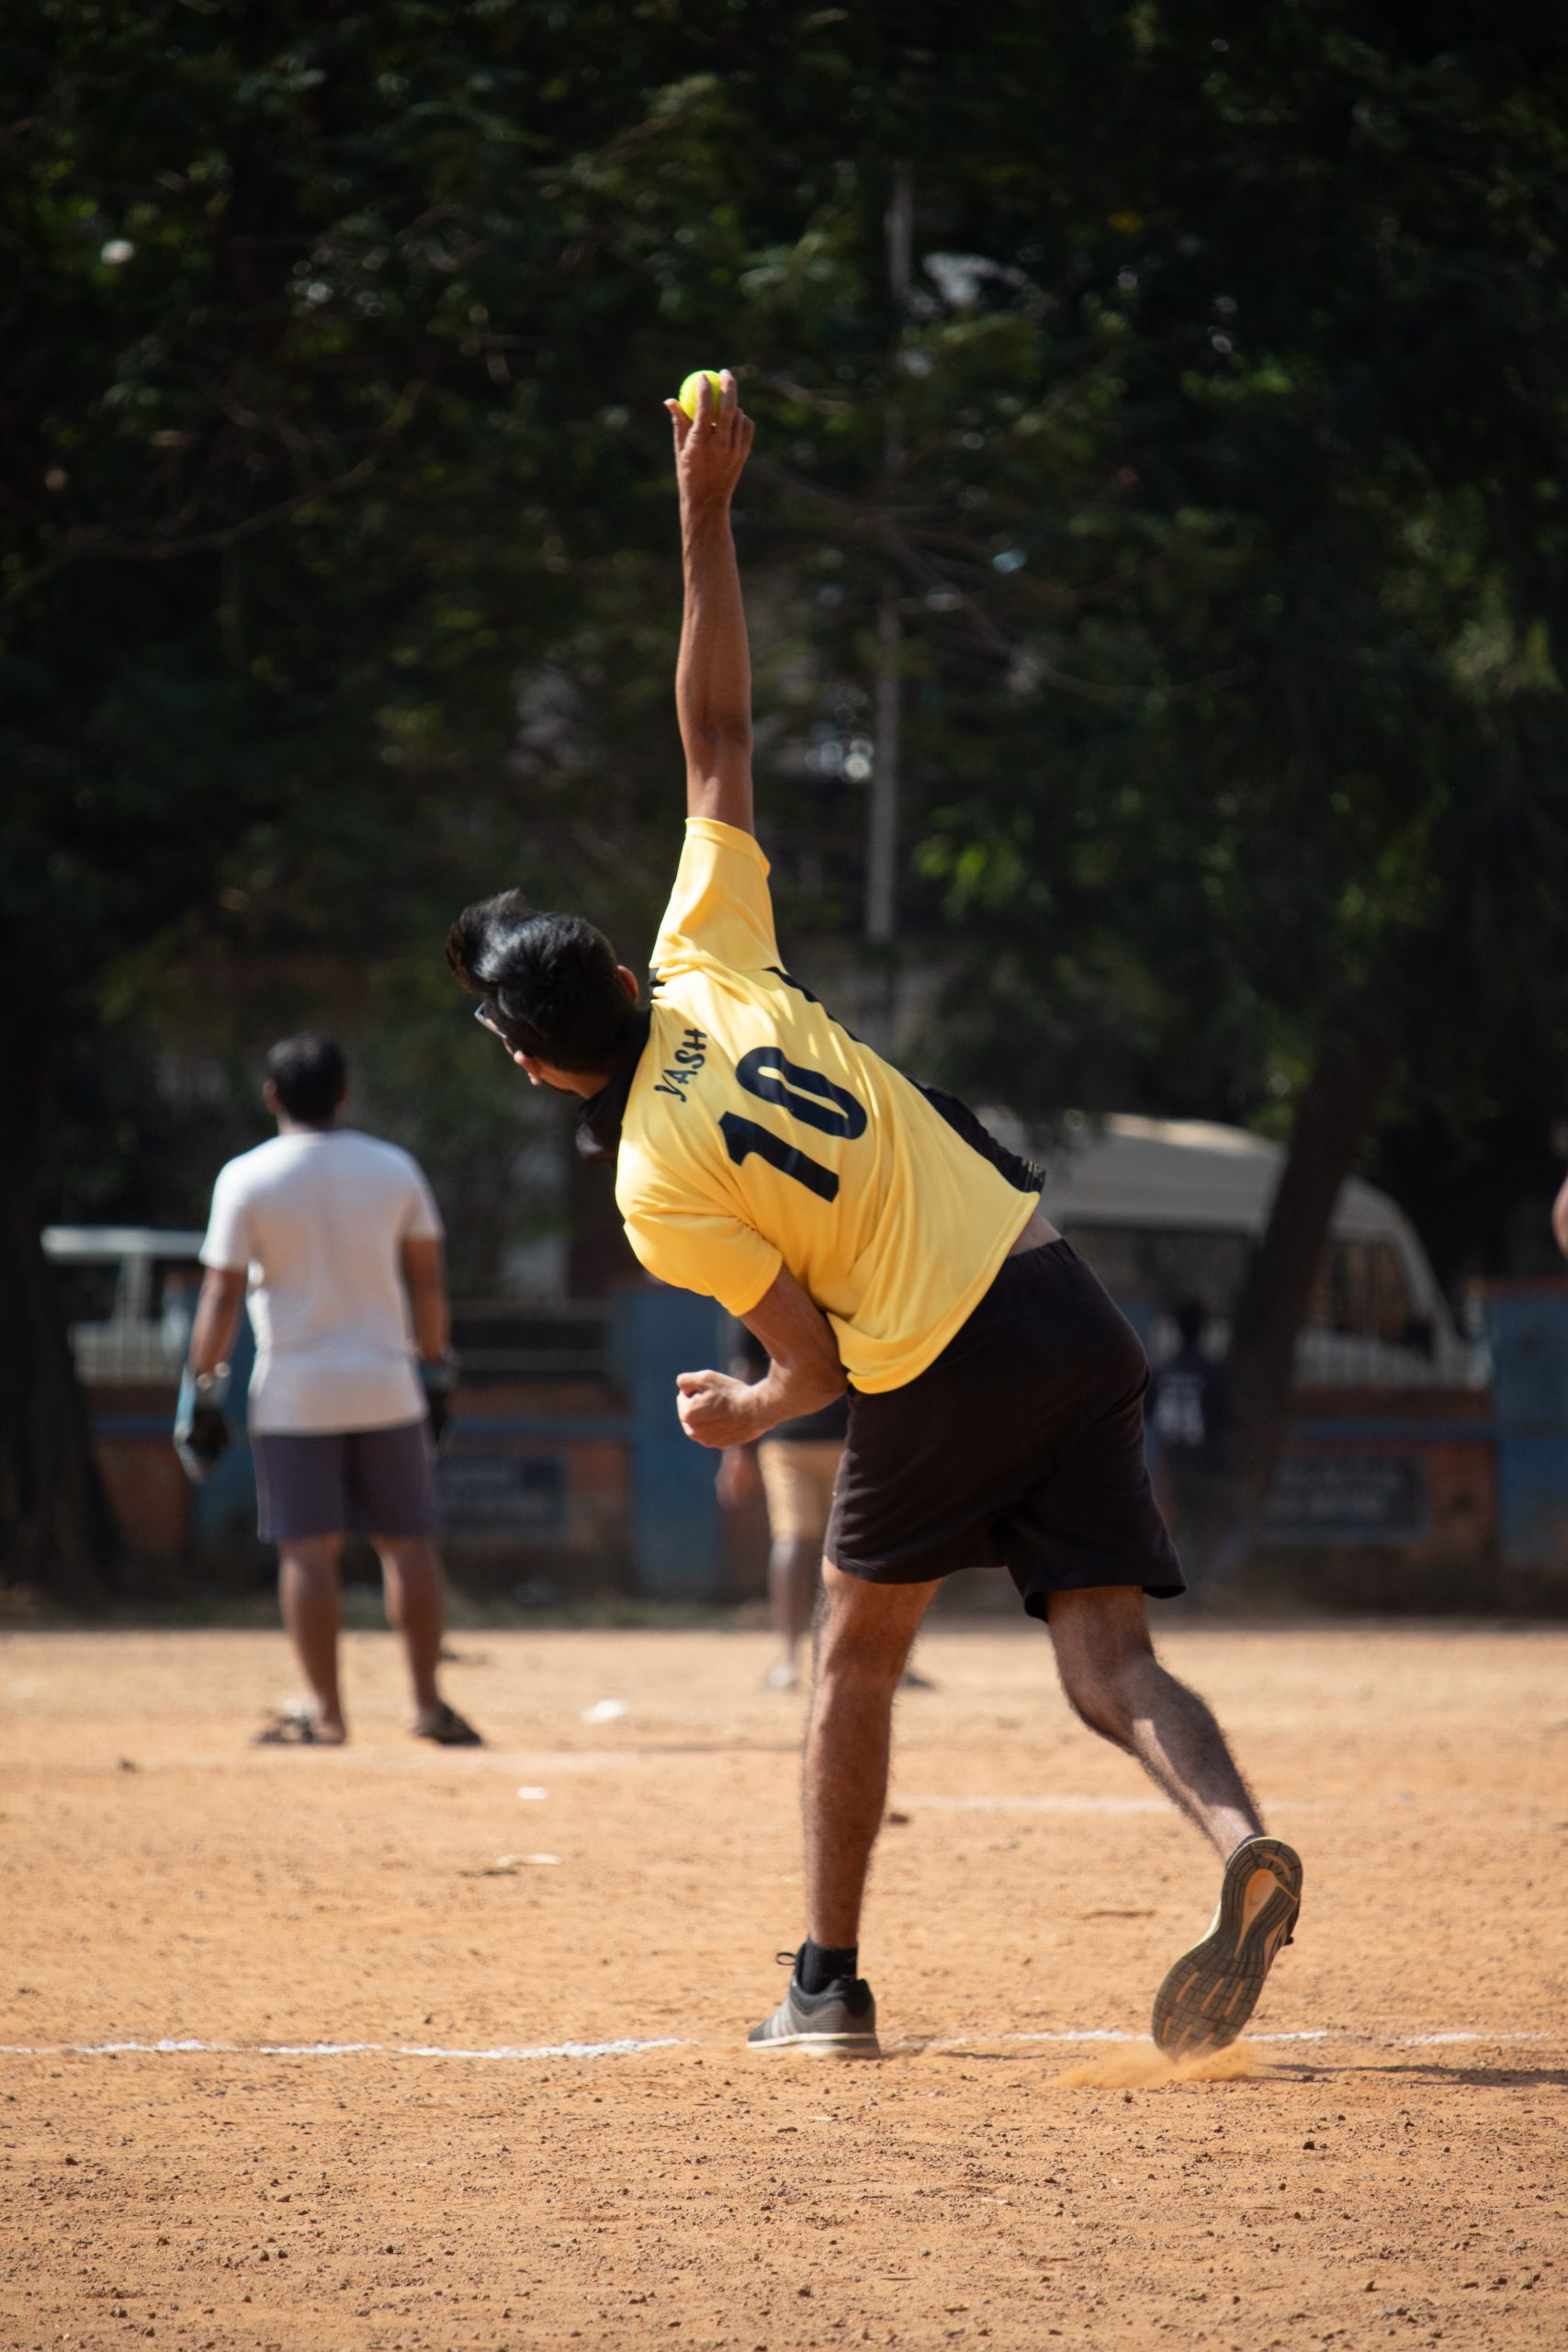 Bowler in Action